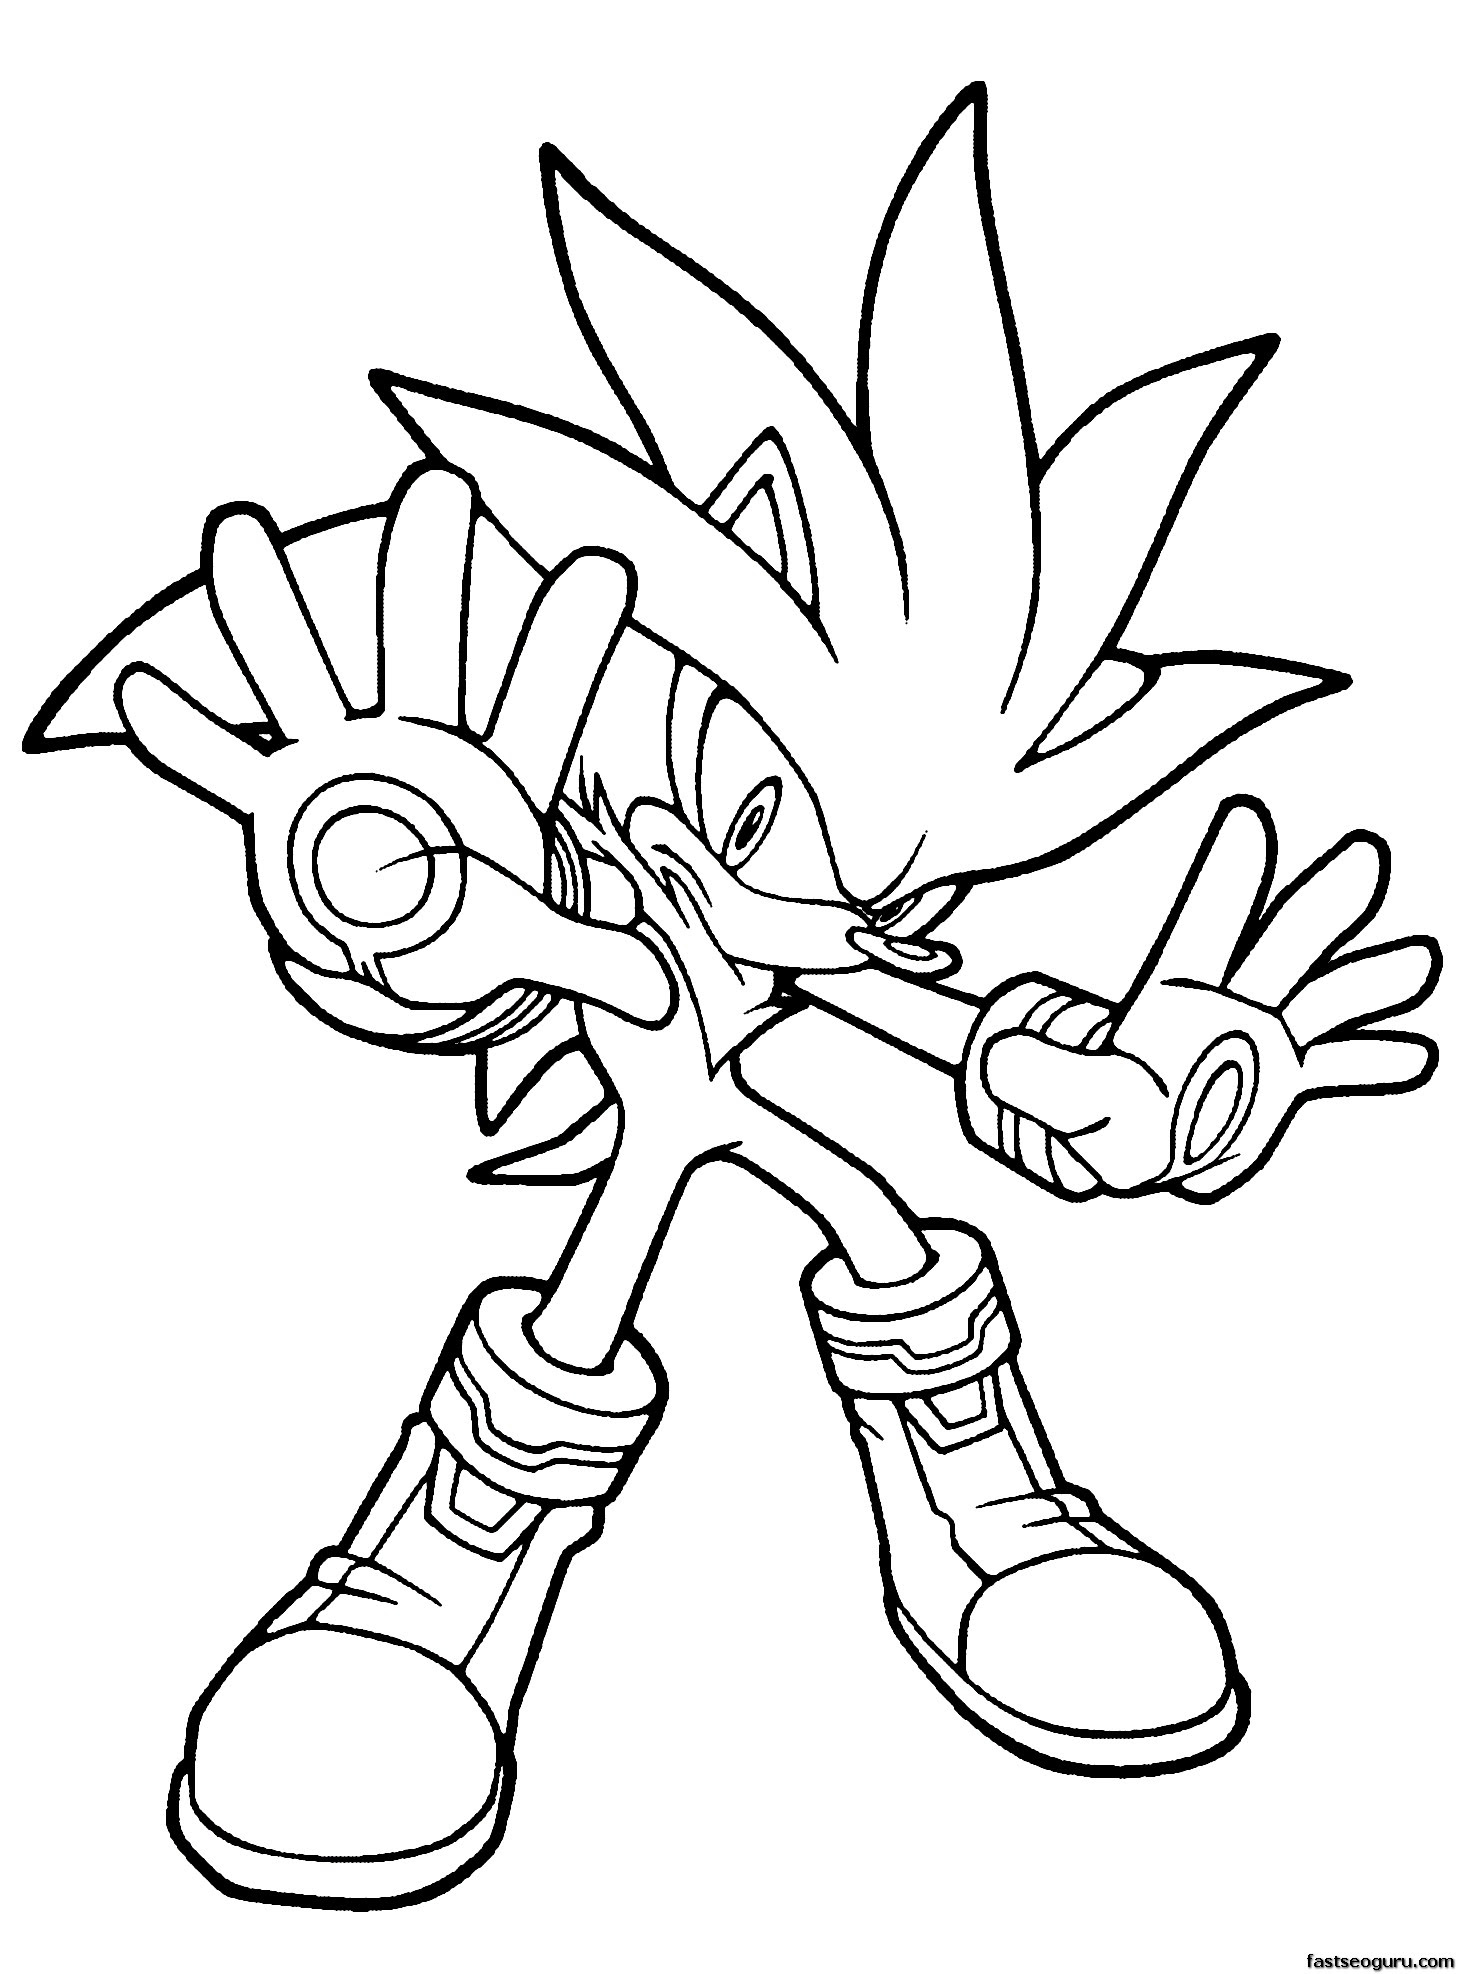 Printable Sonic the Hedgehog Silver Coloring in sheets ...